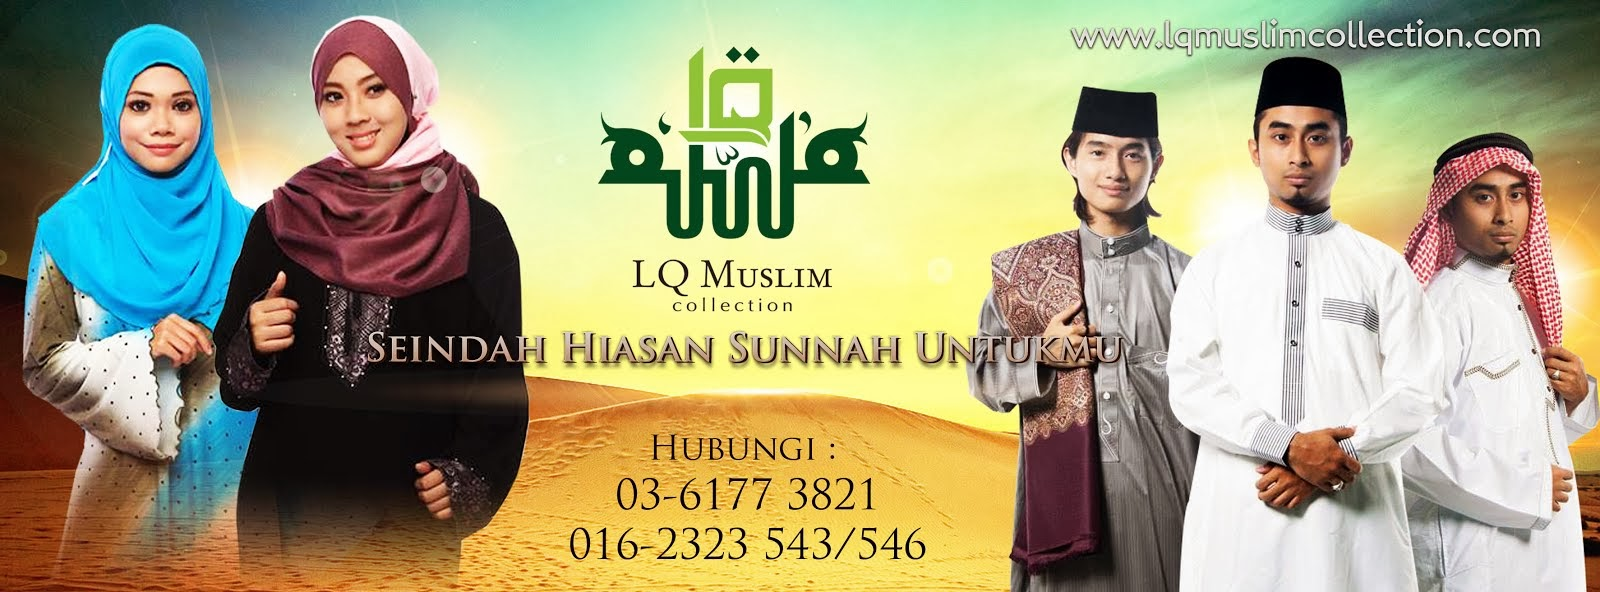 LQ MUSLIM COLLECTION